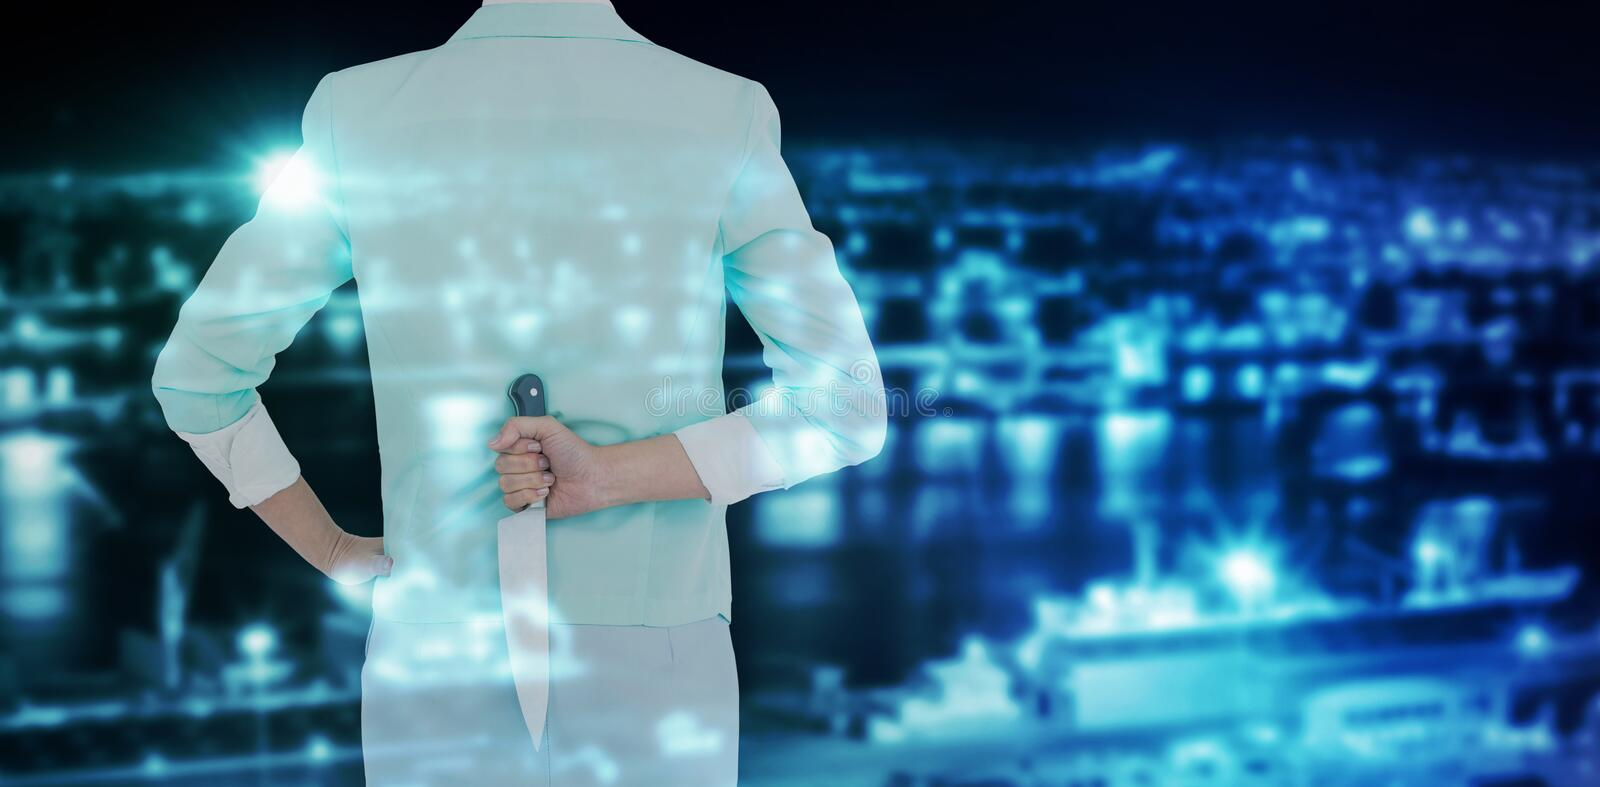 Composite image of rear view of businesswoman hiding knife. Rear view of businesswoman hiding knife against illuminated harbor against cityscape stock images